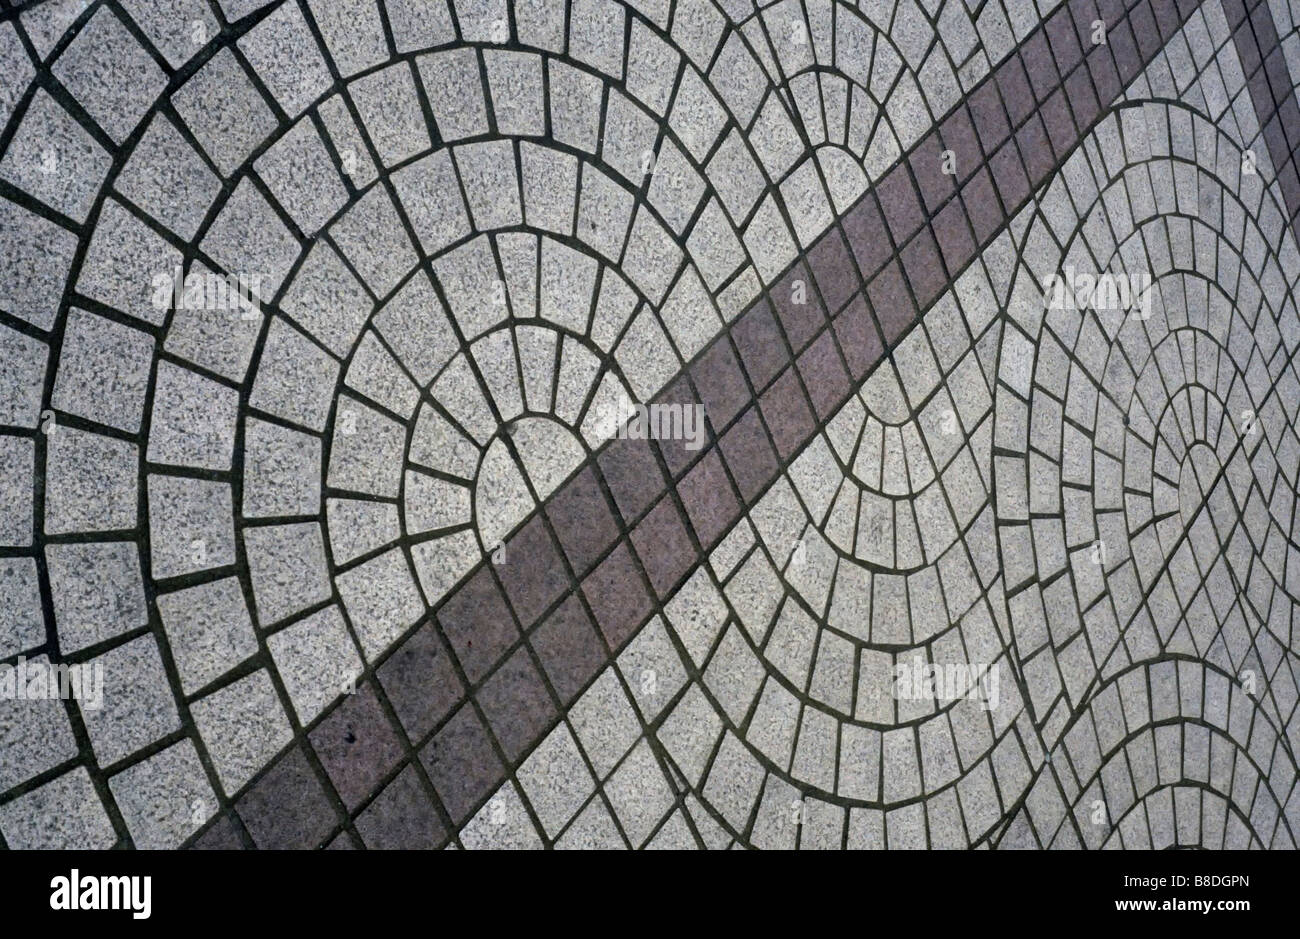 Curved Floor tiles in Hong Kong Stock Photo: 22426173 - Alamy